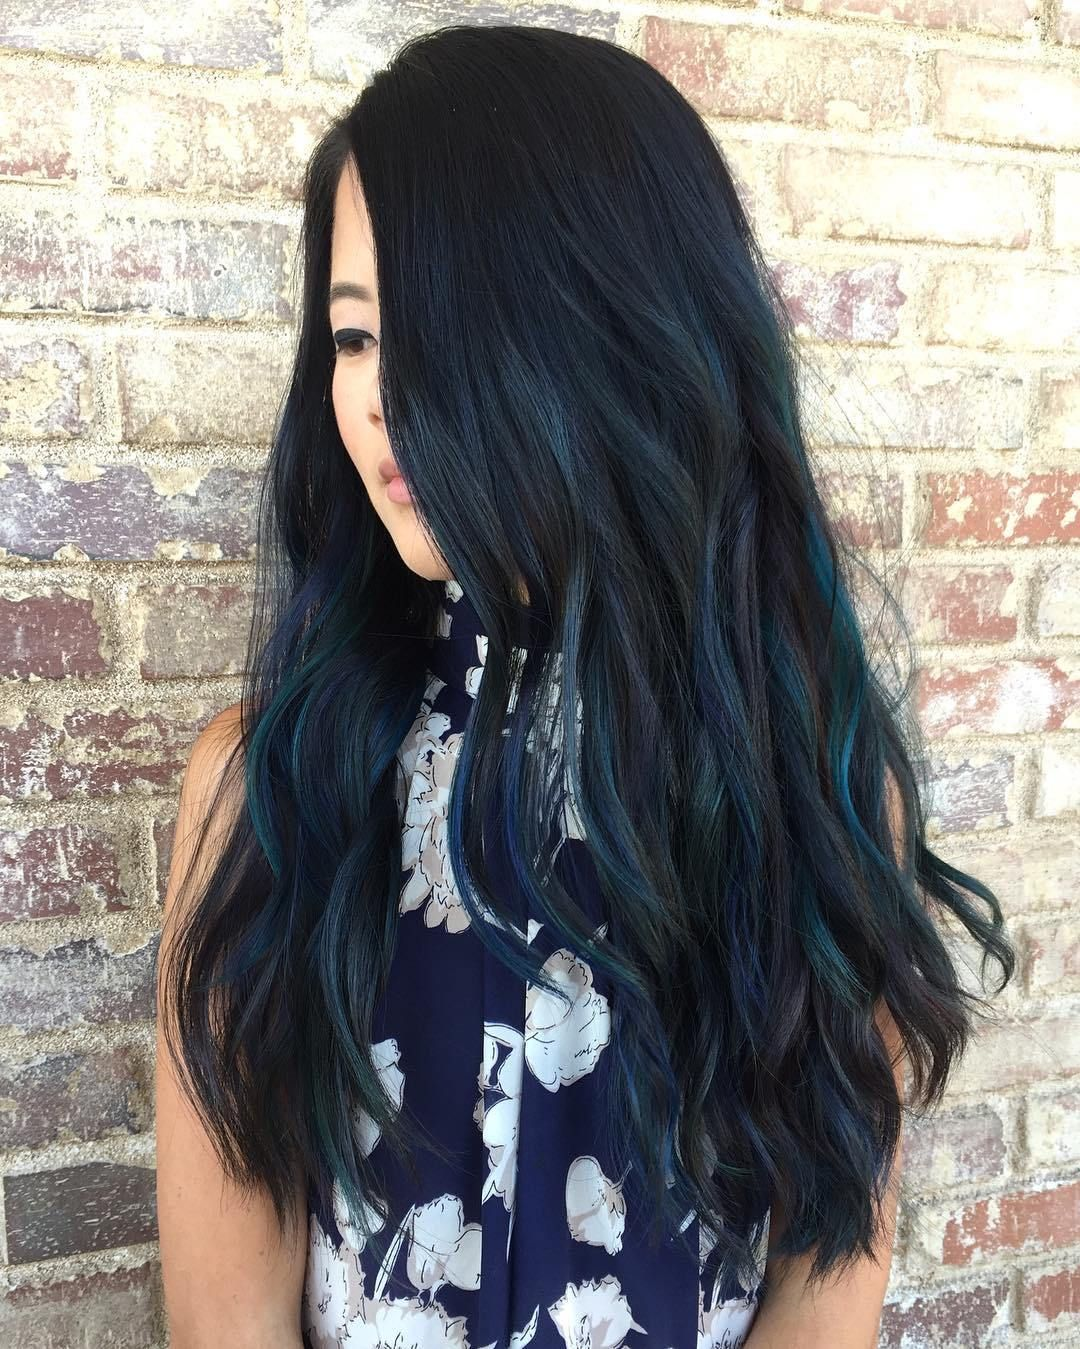 Blue Black Hair How To Get It Right Blue Black Hair Blue Black Hair Color Hair Color For Black Hair